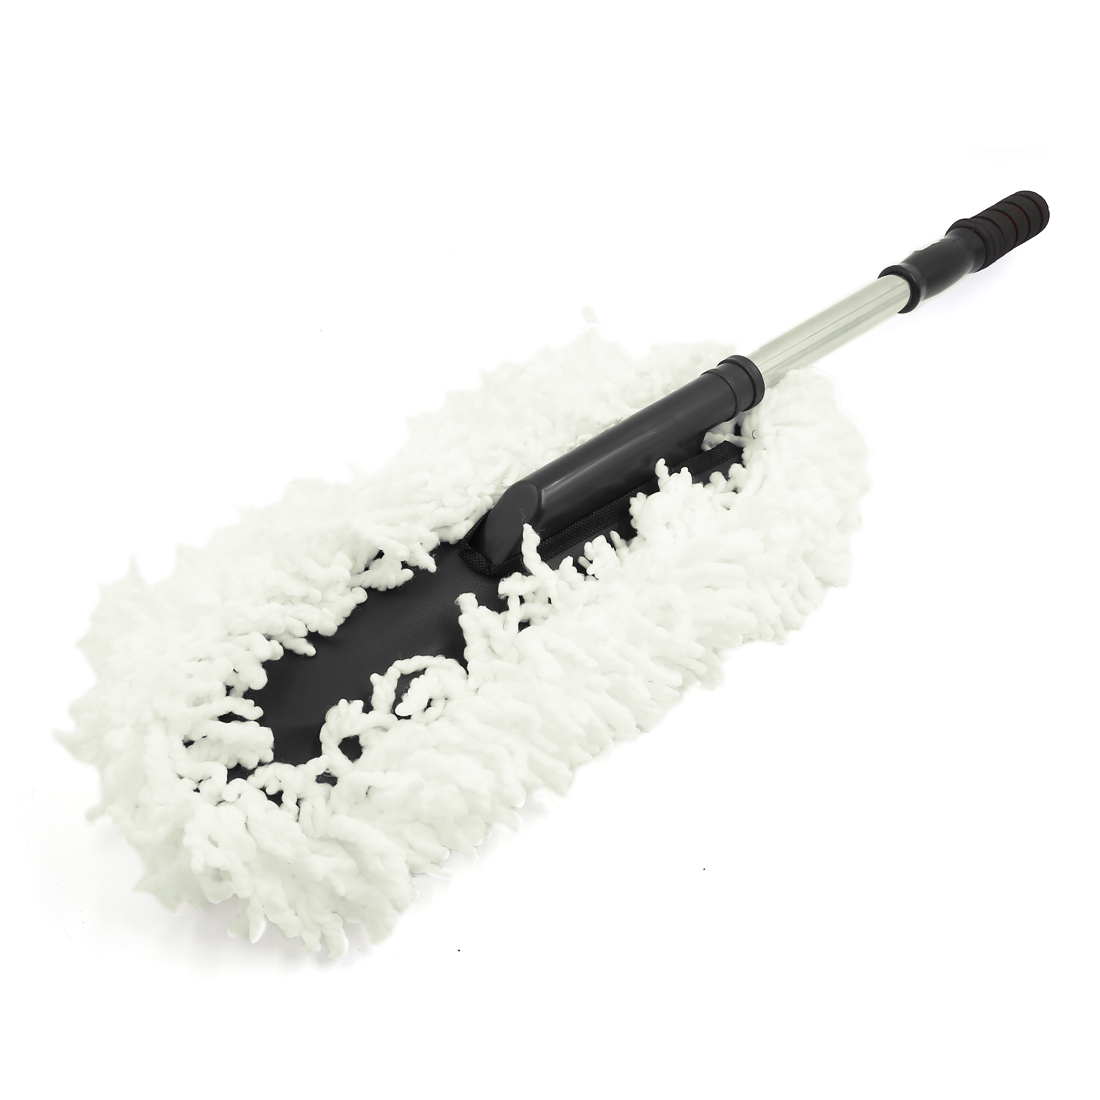 Home Car Wash Cleaning Brush Dusting Tool Microfiber Duster White 74cm Long